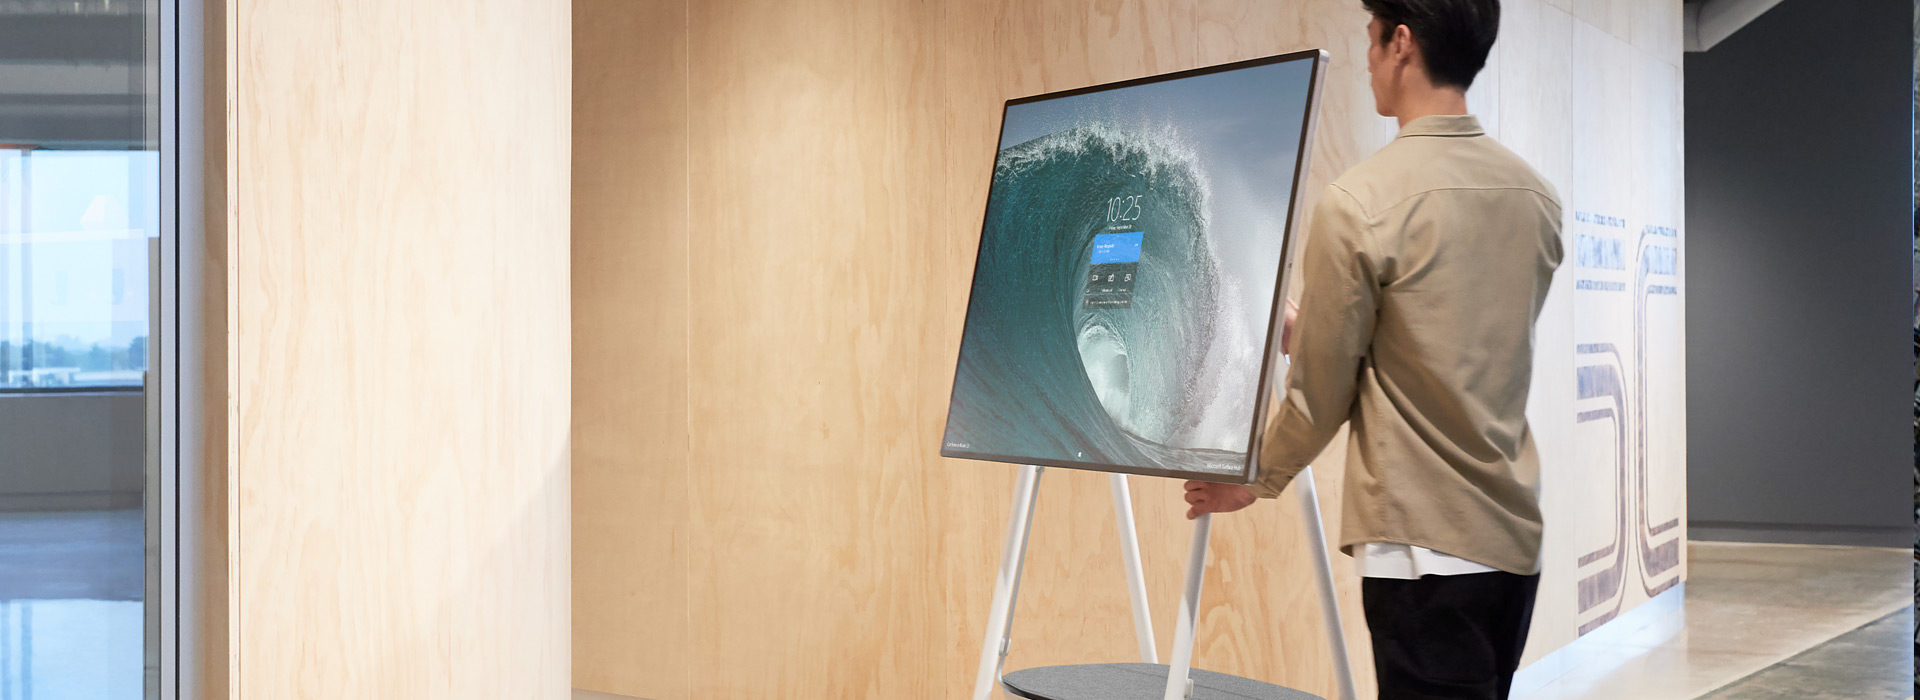 Un homme transporte un Surface Hub 2S sur un support roulant mobile